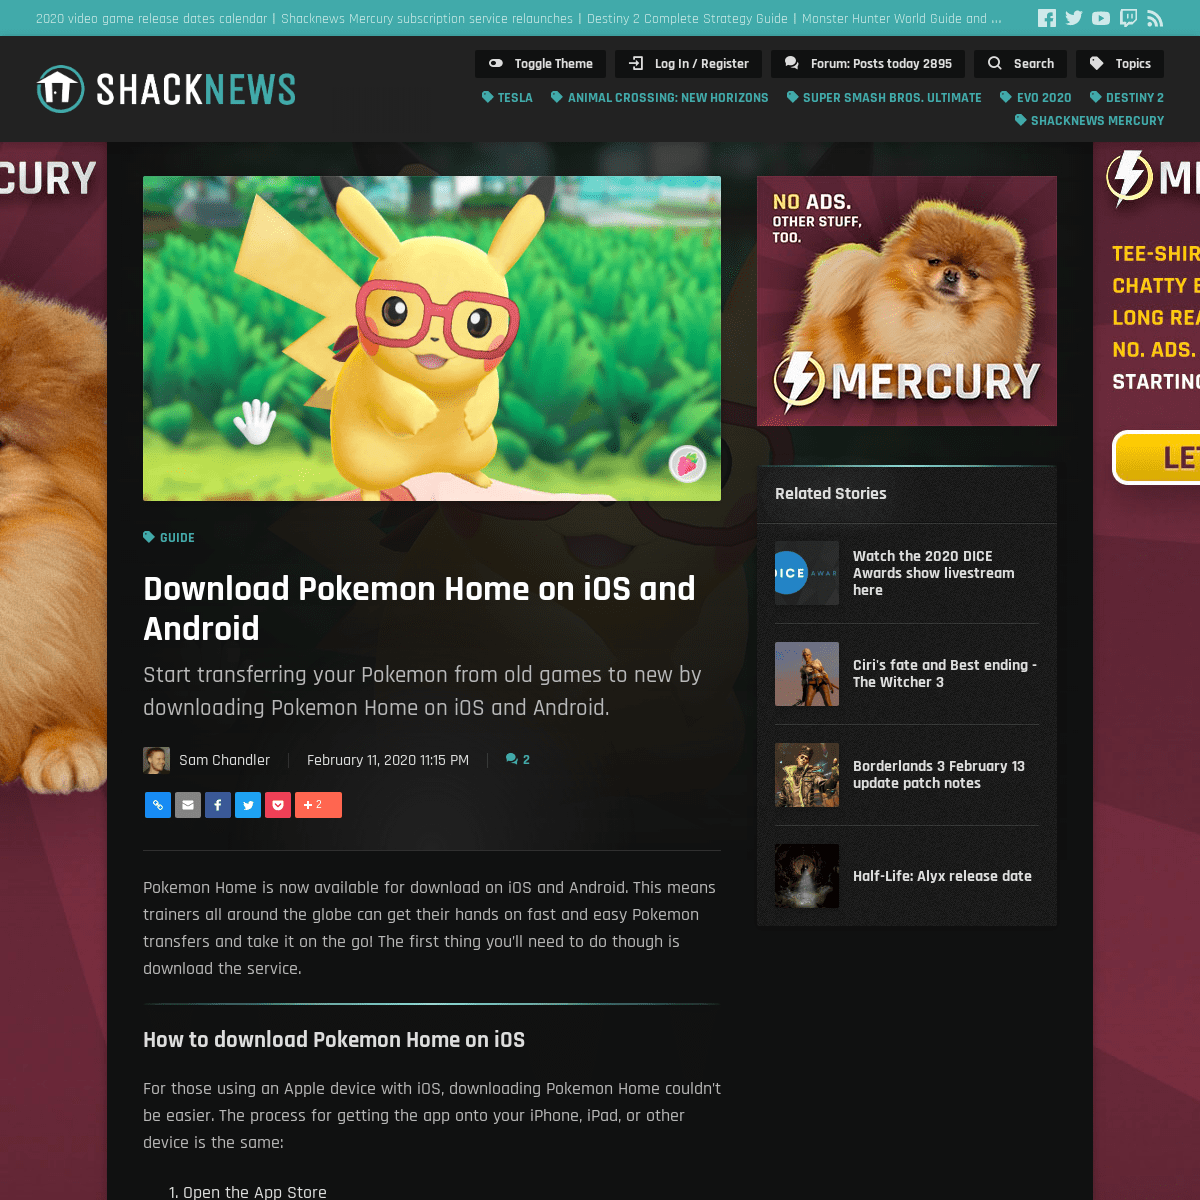 Download Pokemon Home on iOS and Android - Shacknews